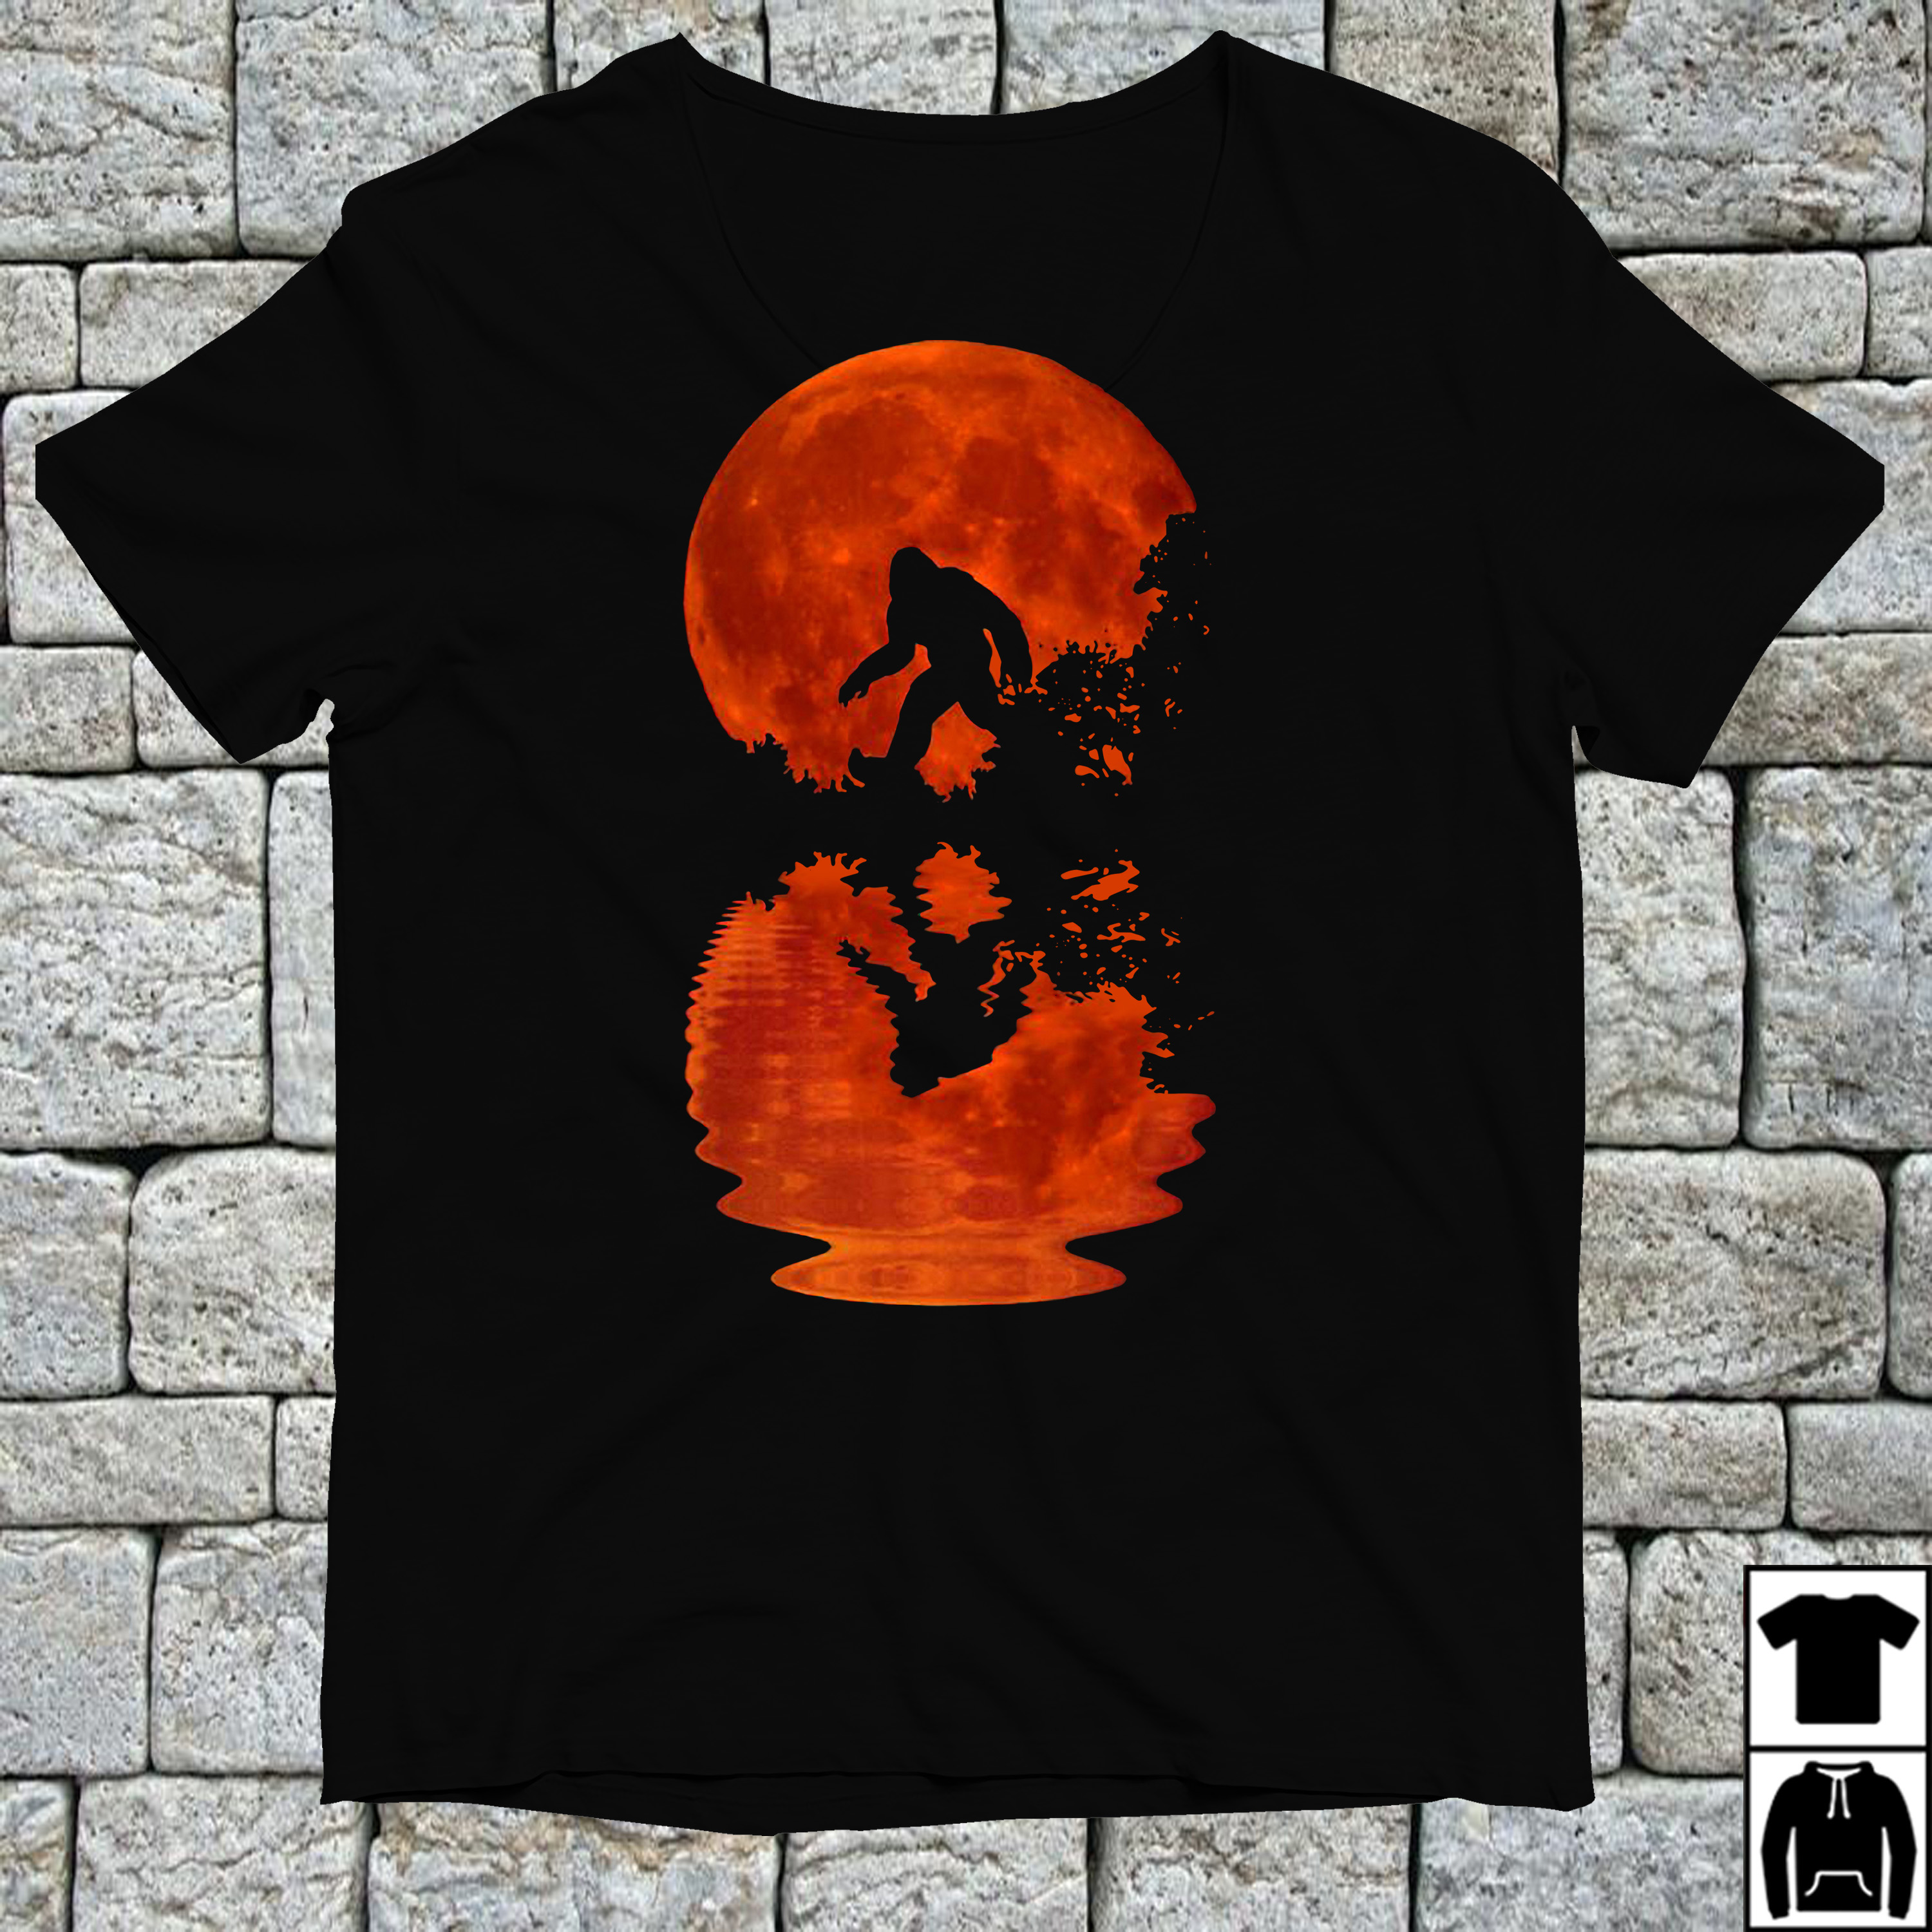 Bigfoot sasquatch full moon shirt